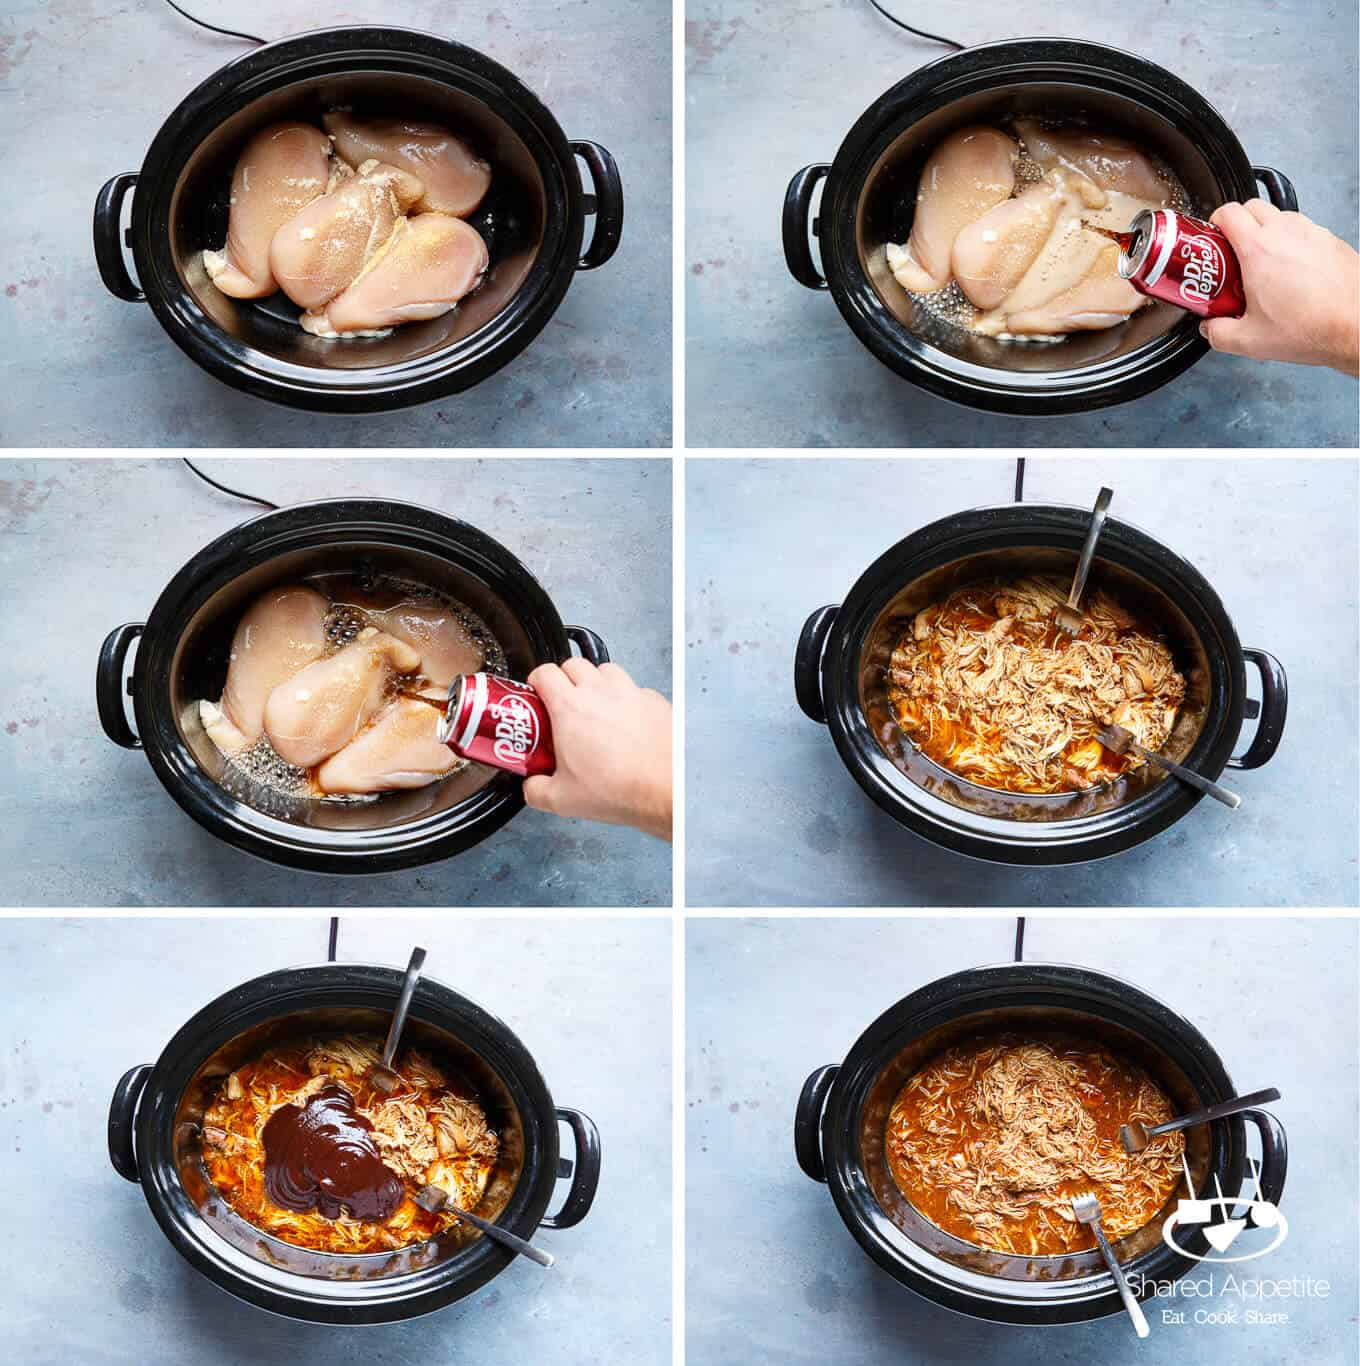 Step by step how to make Slow Cooker Dr. Pepper BBQ Pulled Chicken Sliders | sharedappetite.com